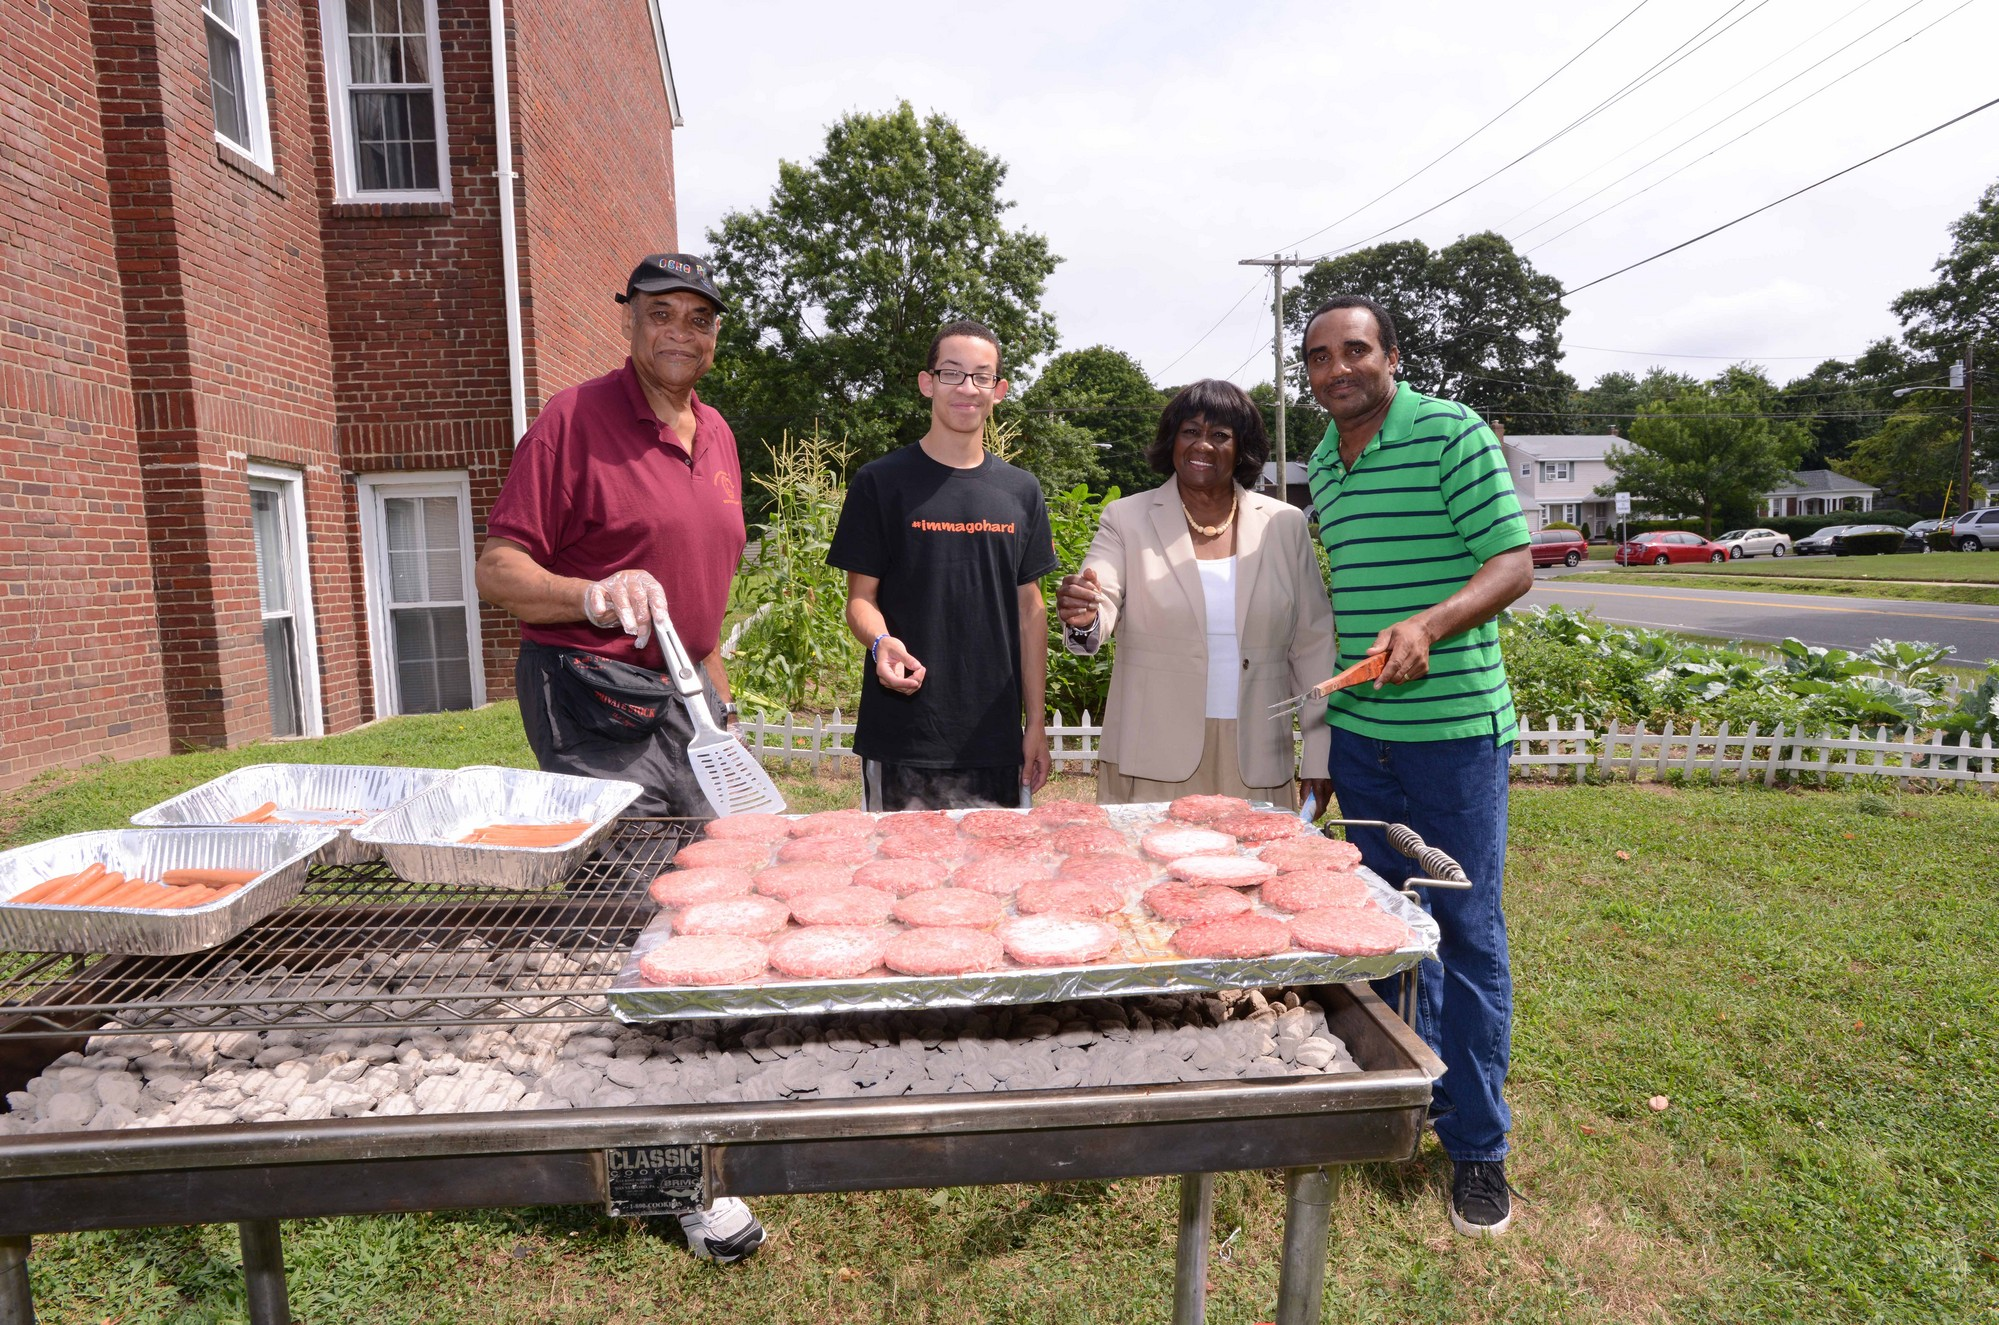 Claude Reed, left, of West Hempstead, Phillip O'Brien, of Hempstead, Councilwoman Goosby and Bobby Vaughan, of Great Neck, grilled up some good eats for the Community Love Feast.